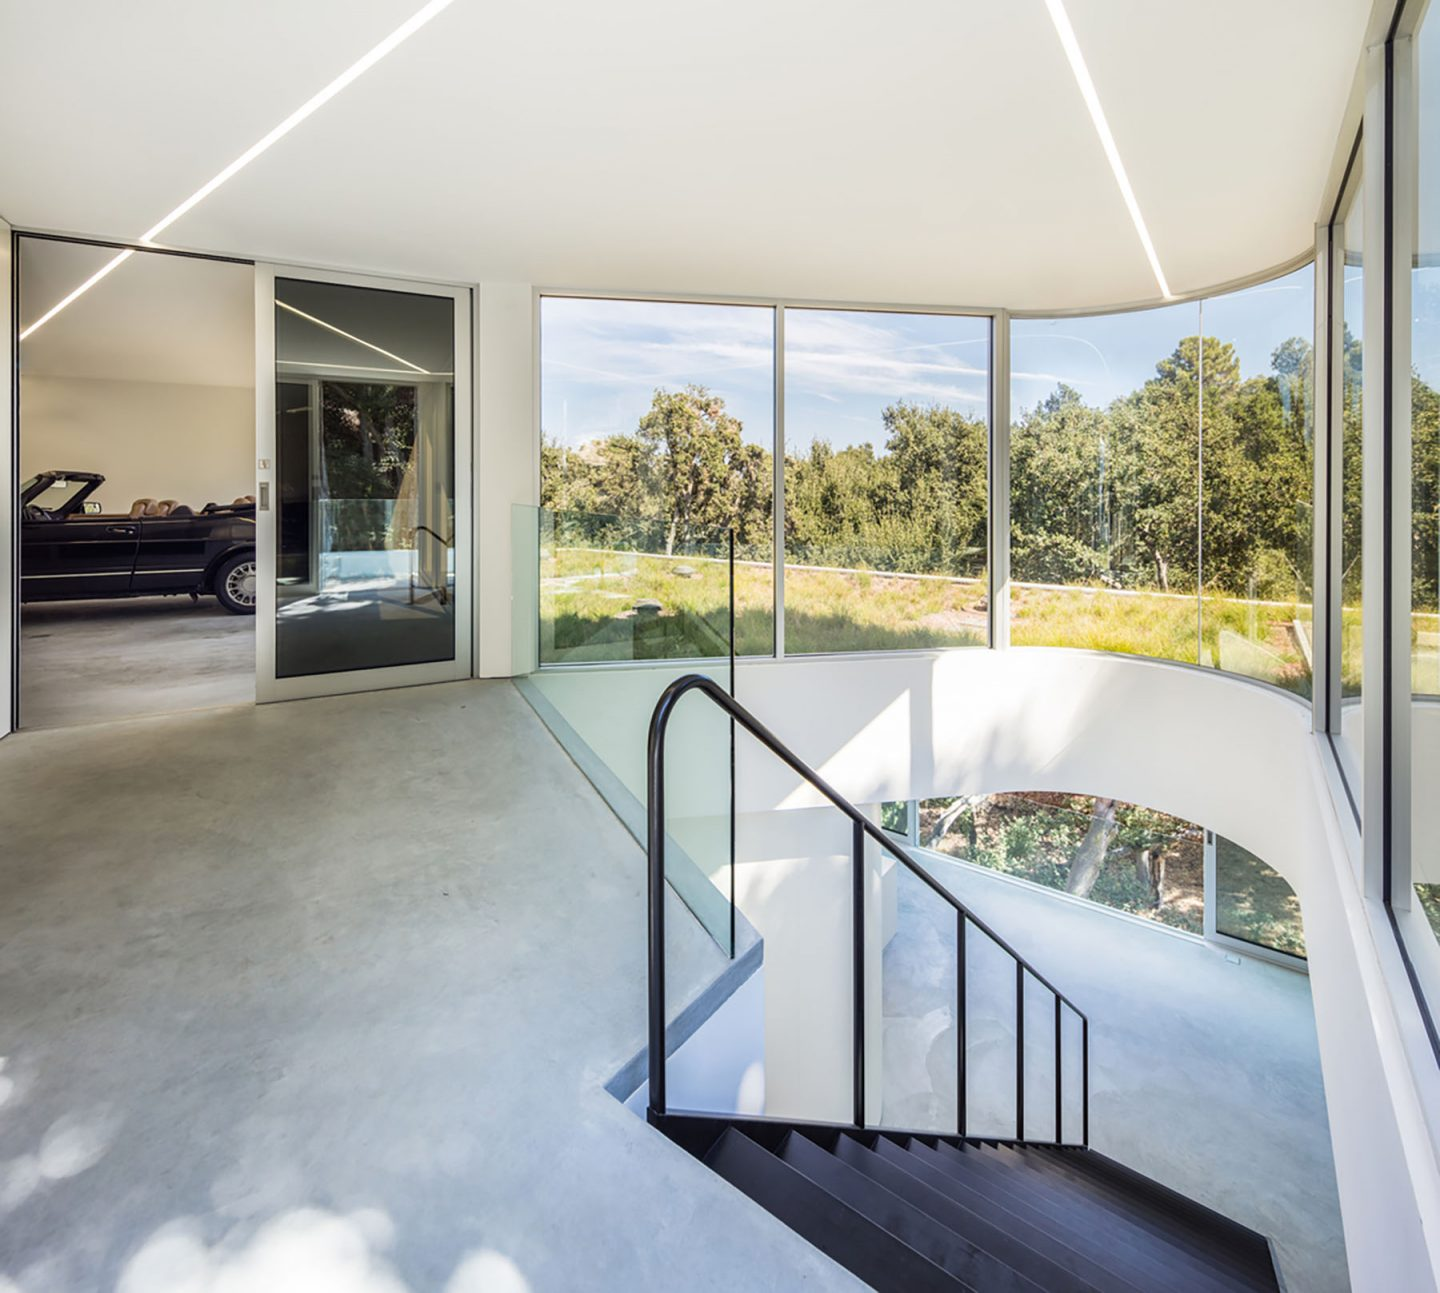 iGNANT-Architecture-Craig-Steely-Pam-Pauls-House-001iGNANT-Architecture-Craig-Steely-Pam-Pauls-House-003b